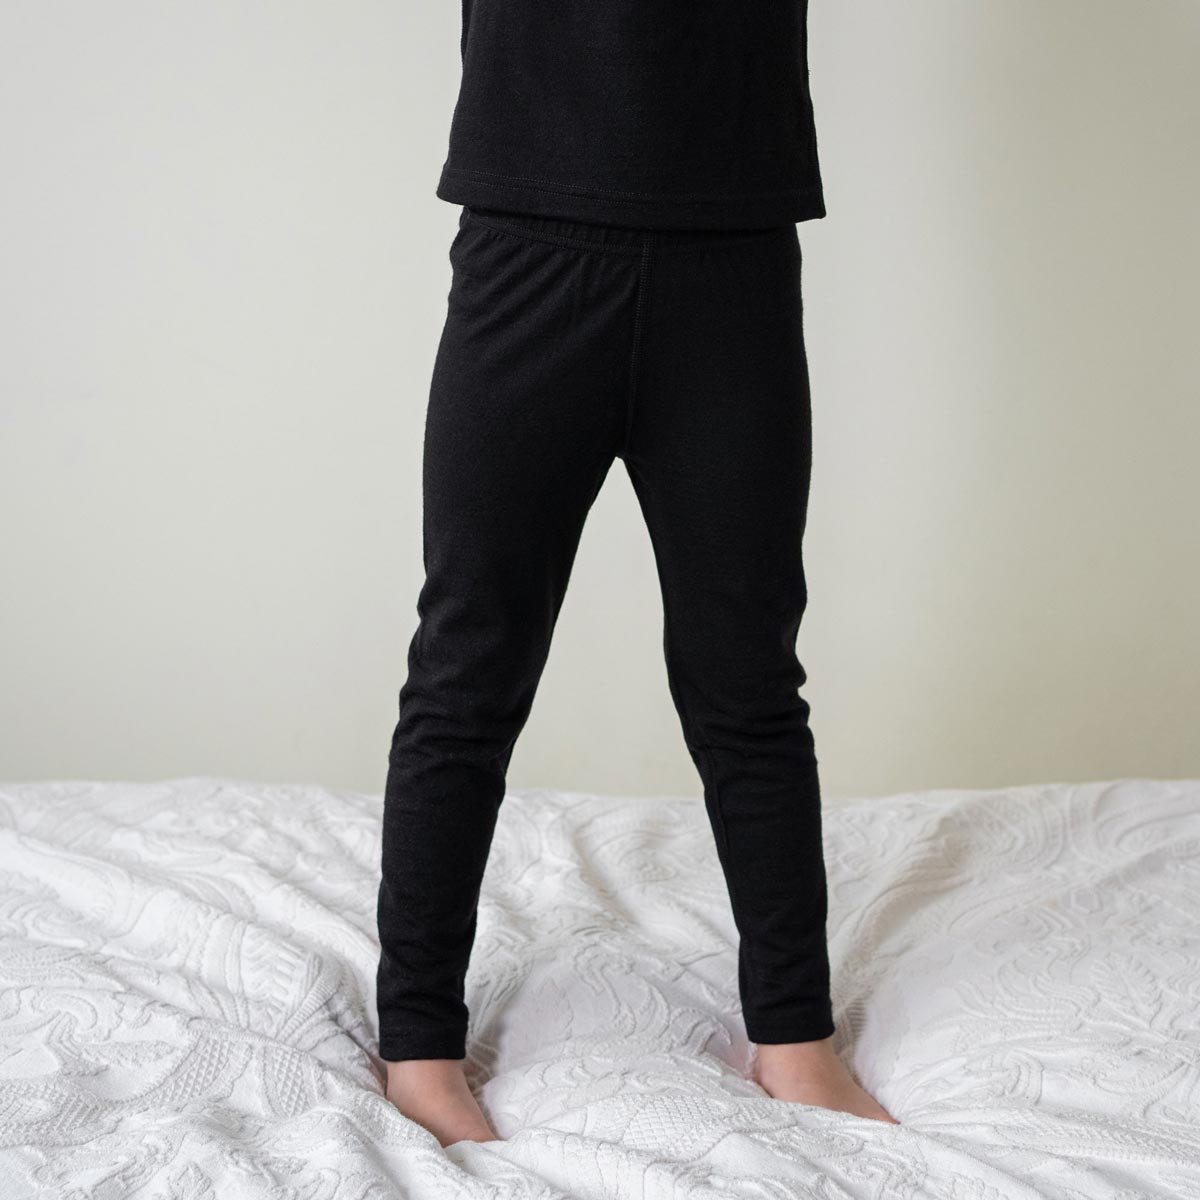 Kids' Pants 160gsm Merino Wool Black